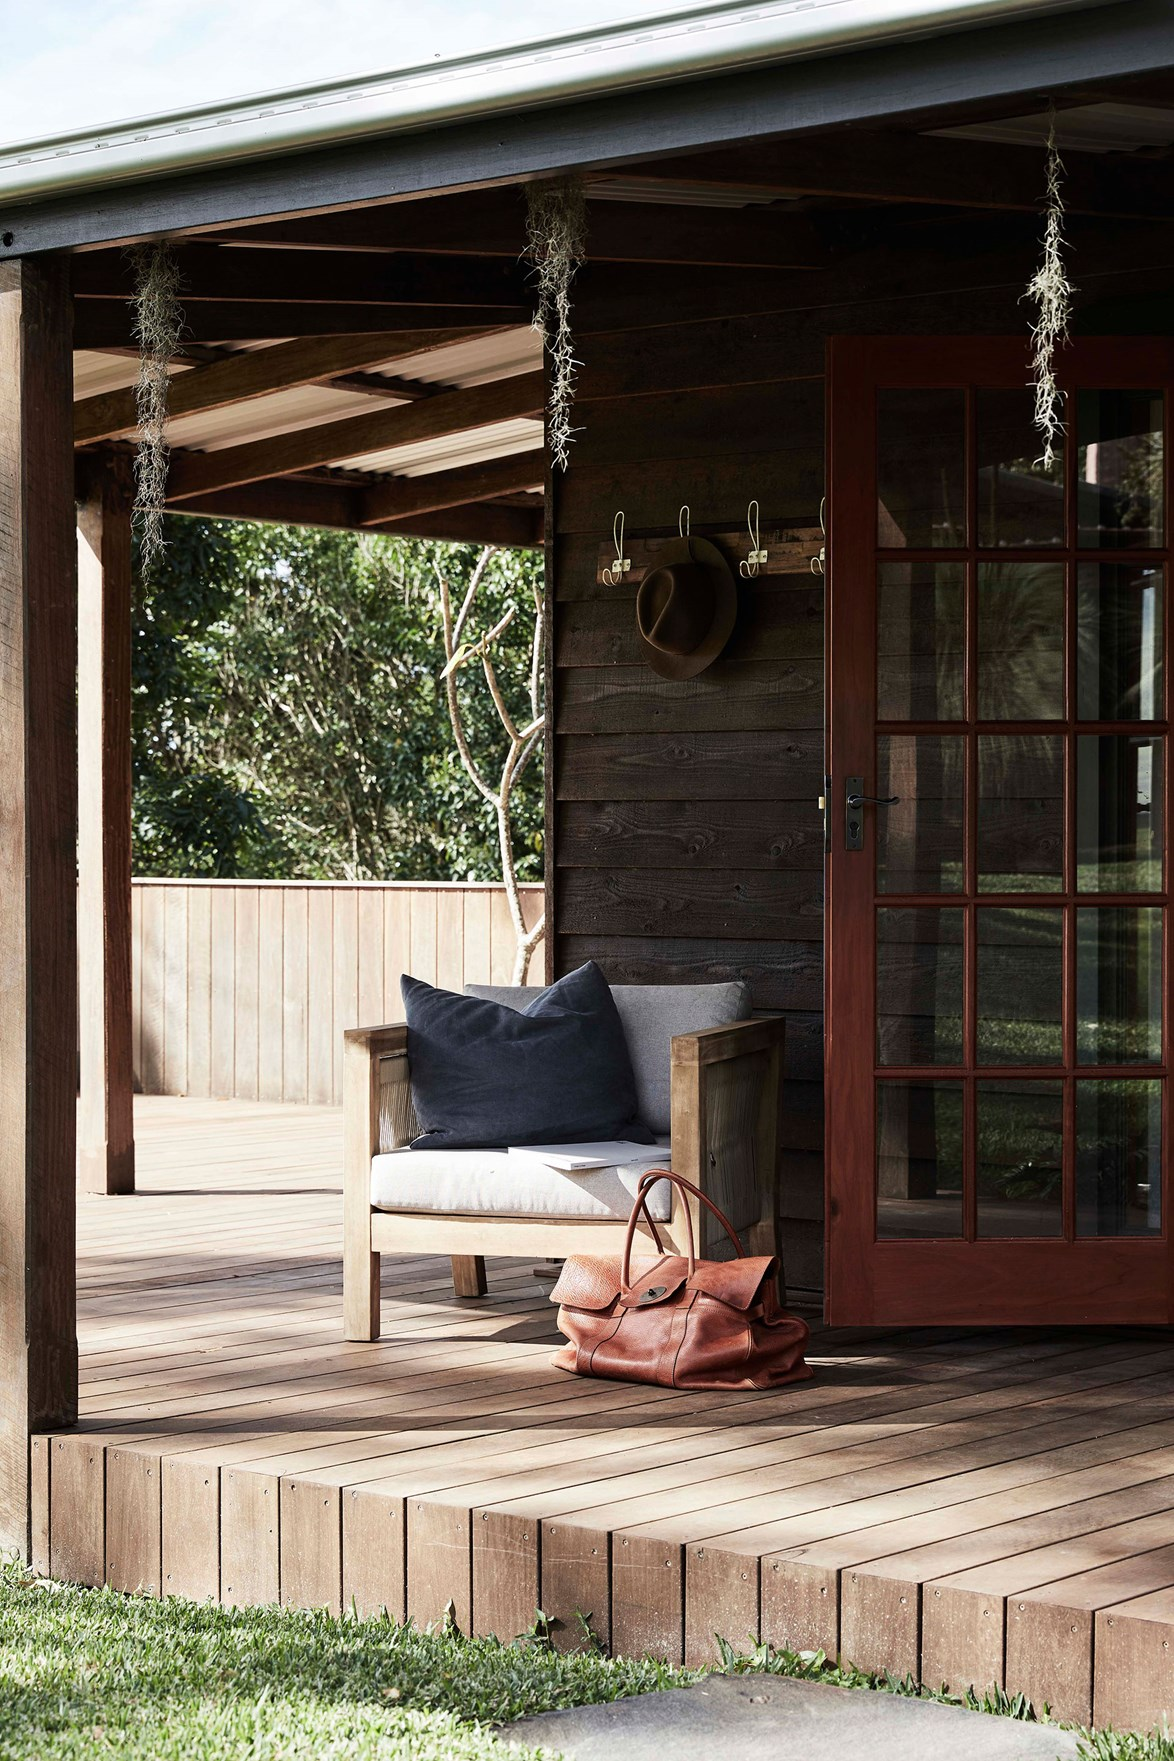 "At [The Perch](https://www.homestolove.com.au/the-perch-byron-bay-nsw-22311|target=""_blank""), a comfy armchair on the verandah invites visitors to enjoy a moment of quiet and observe the magical Byron Bay scenery."